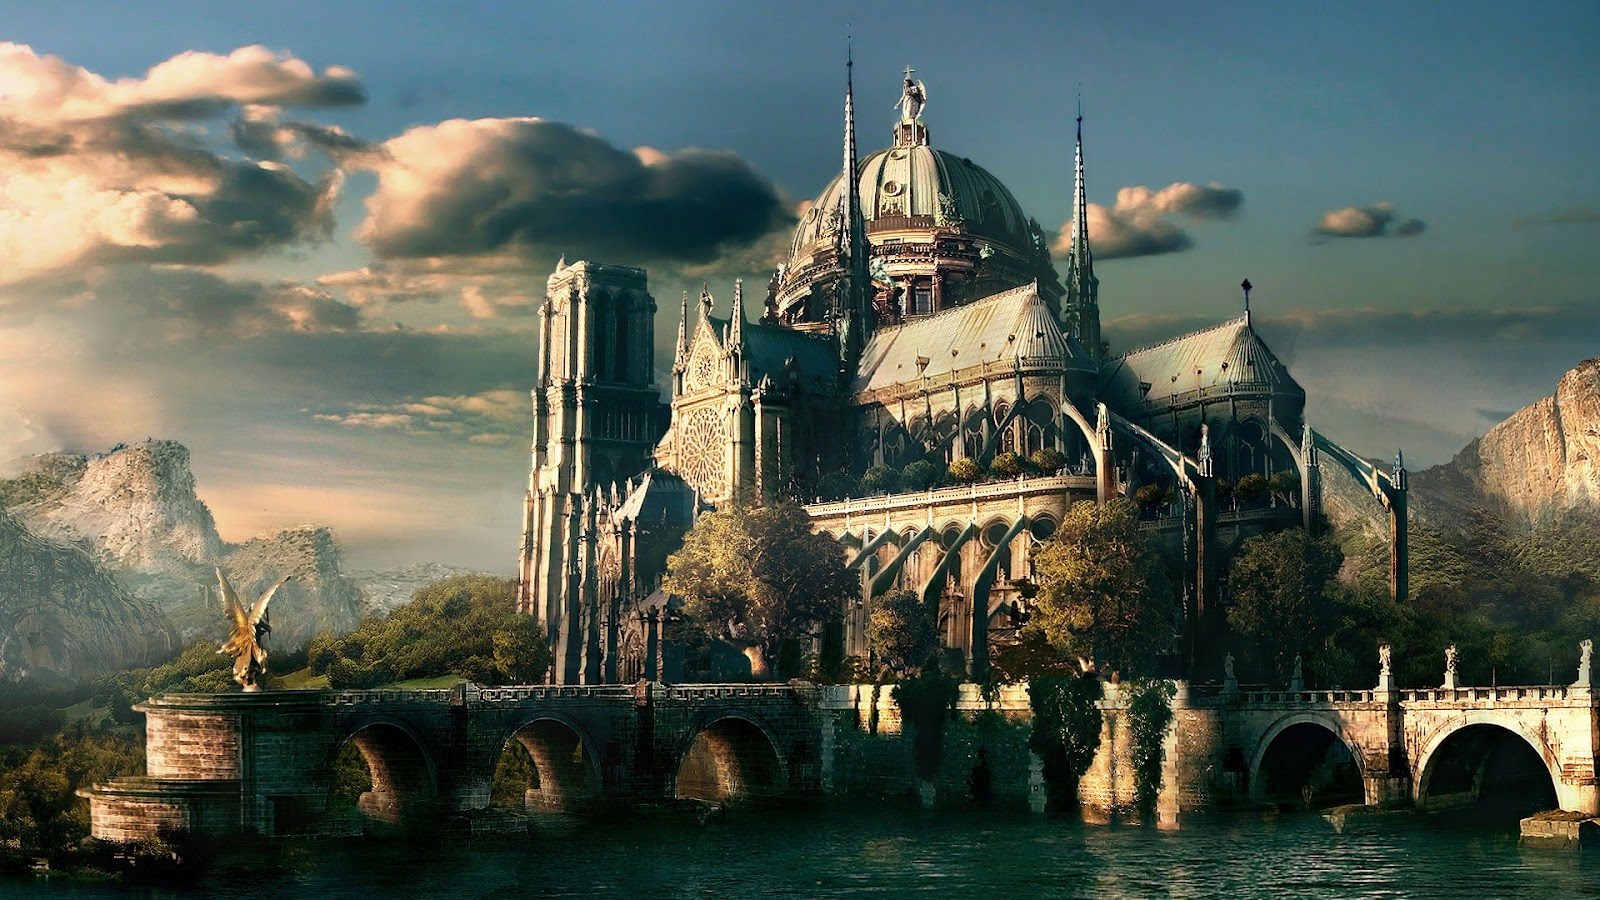 Liquicity Dreamworld Hd Desktop Wallpaper Fantasy Castle